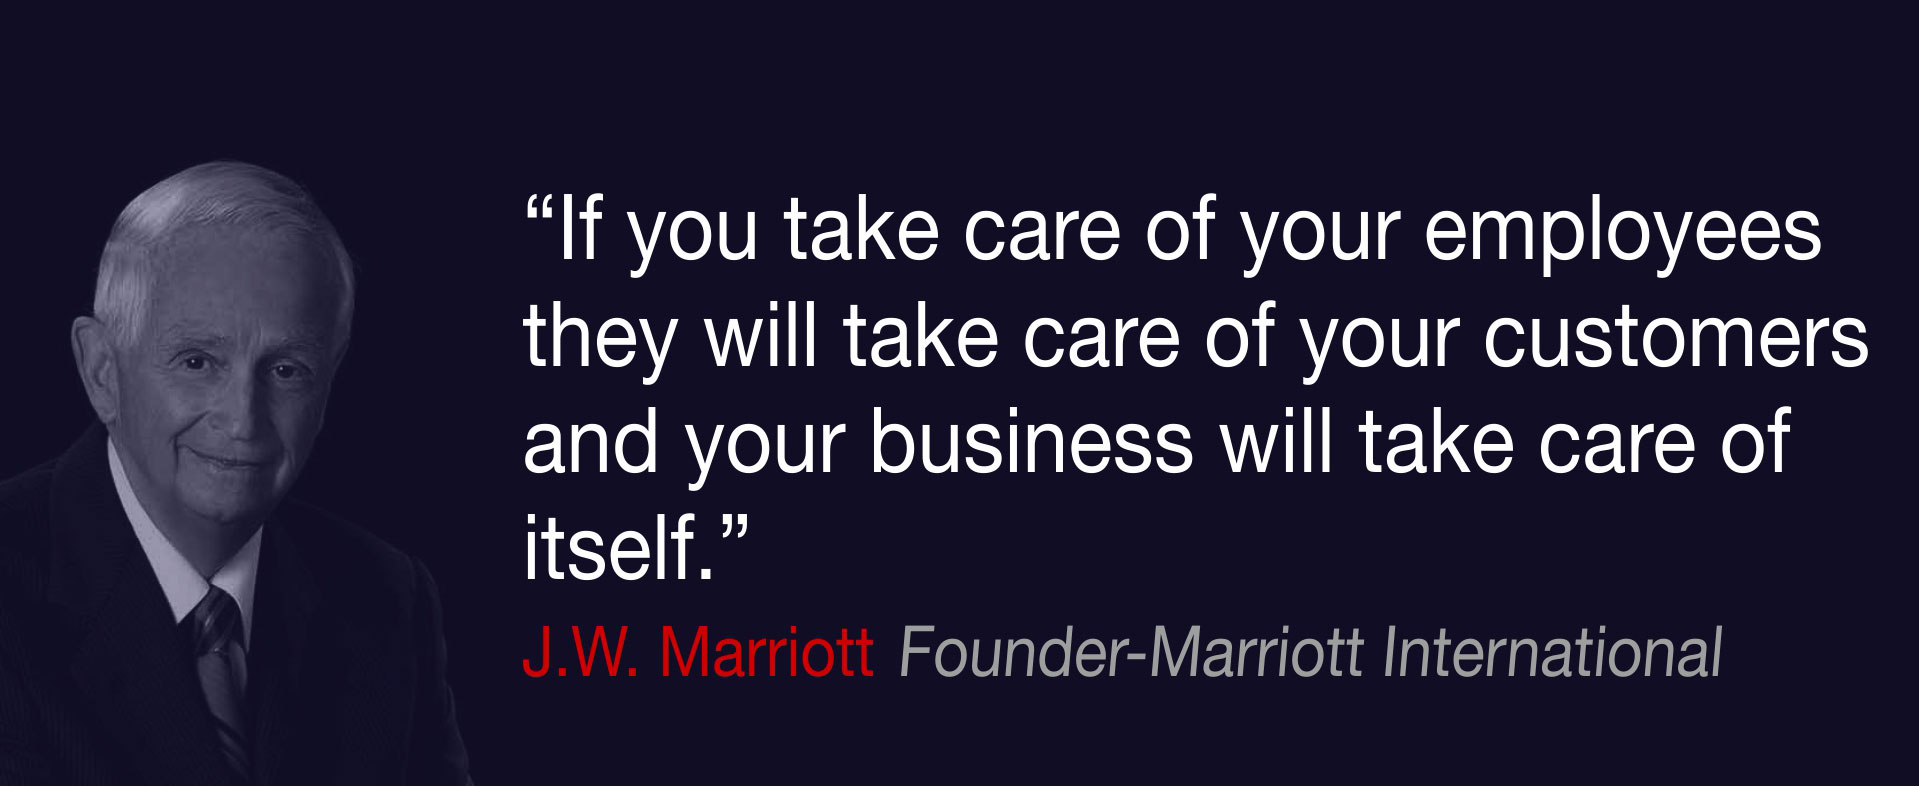 If you take care of your employees they will take care of your customers and your business will take care of itself, J.W. Marriott